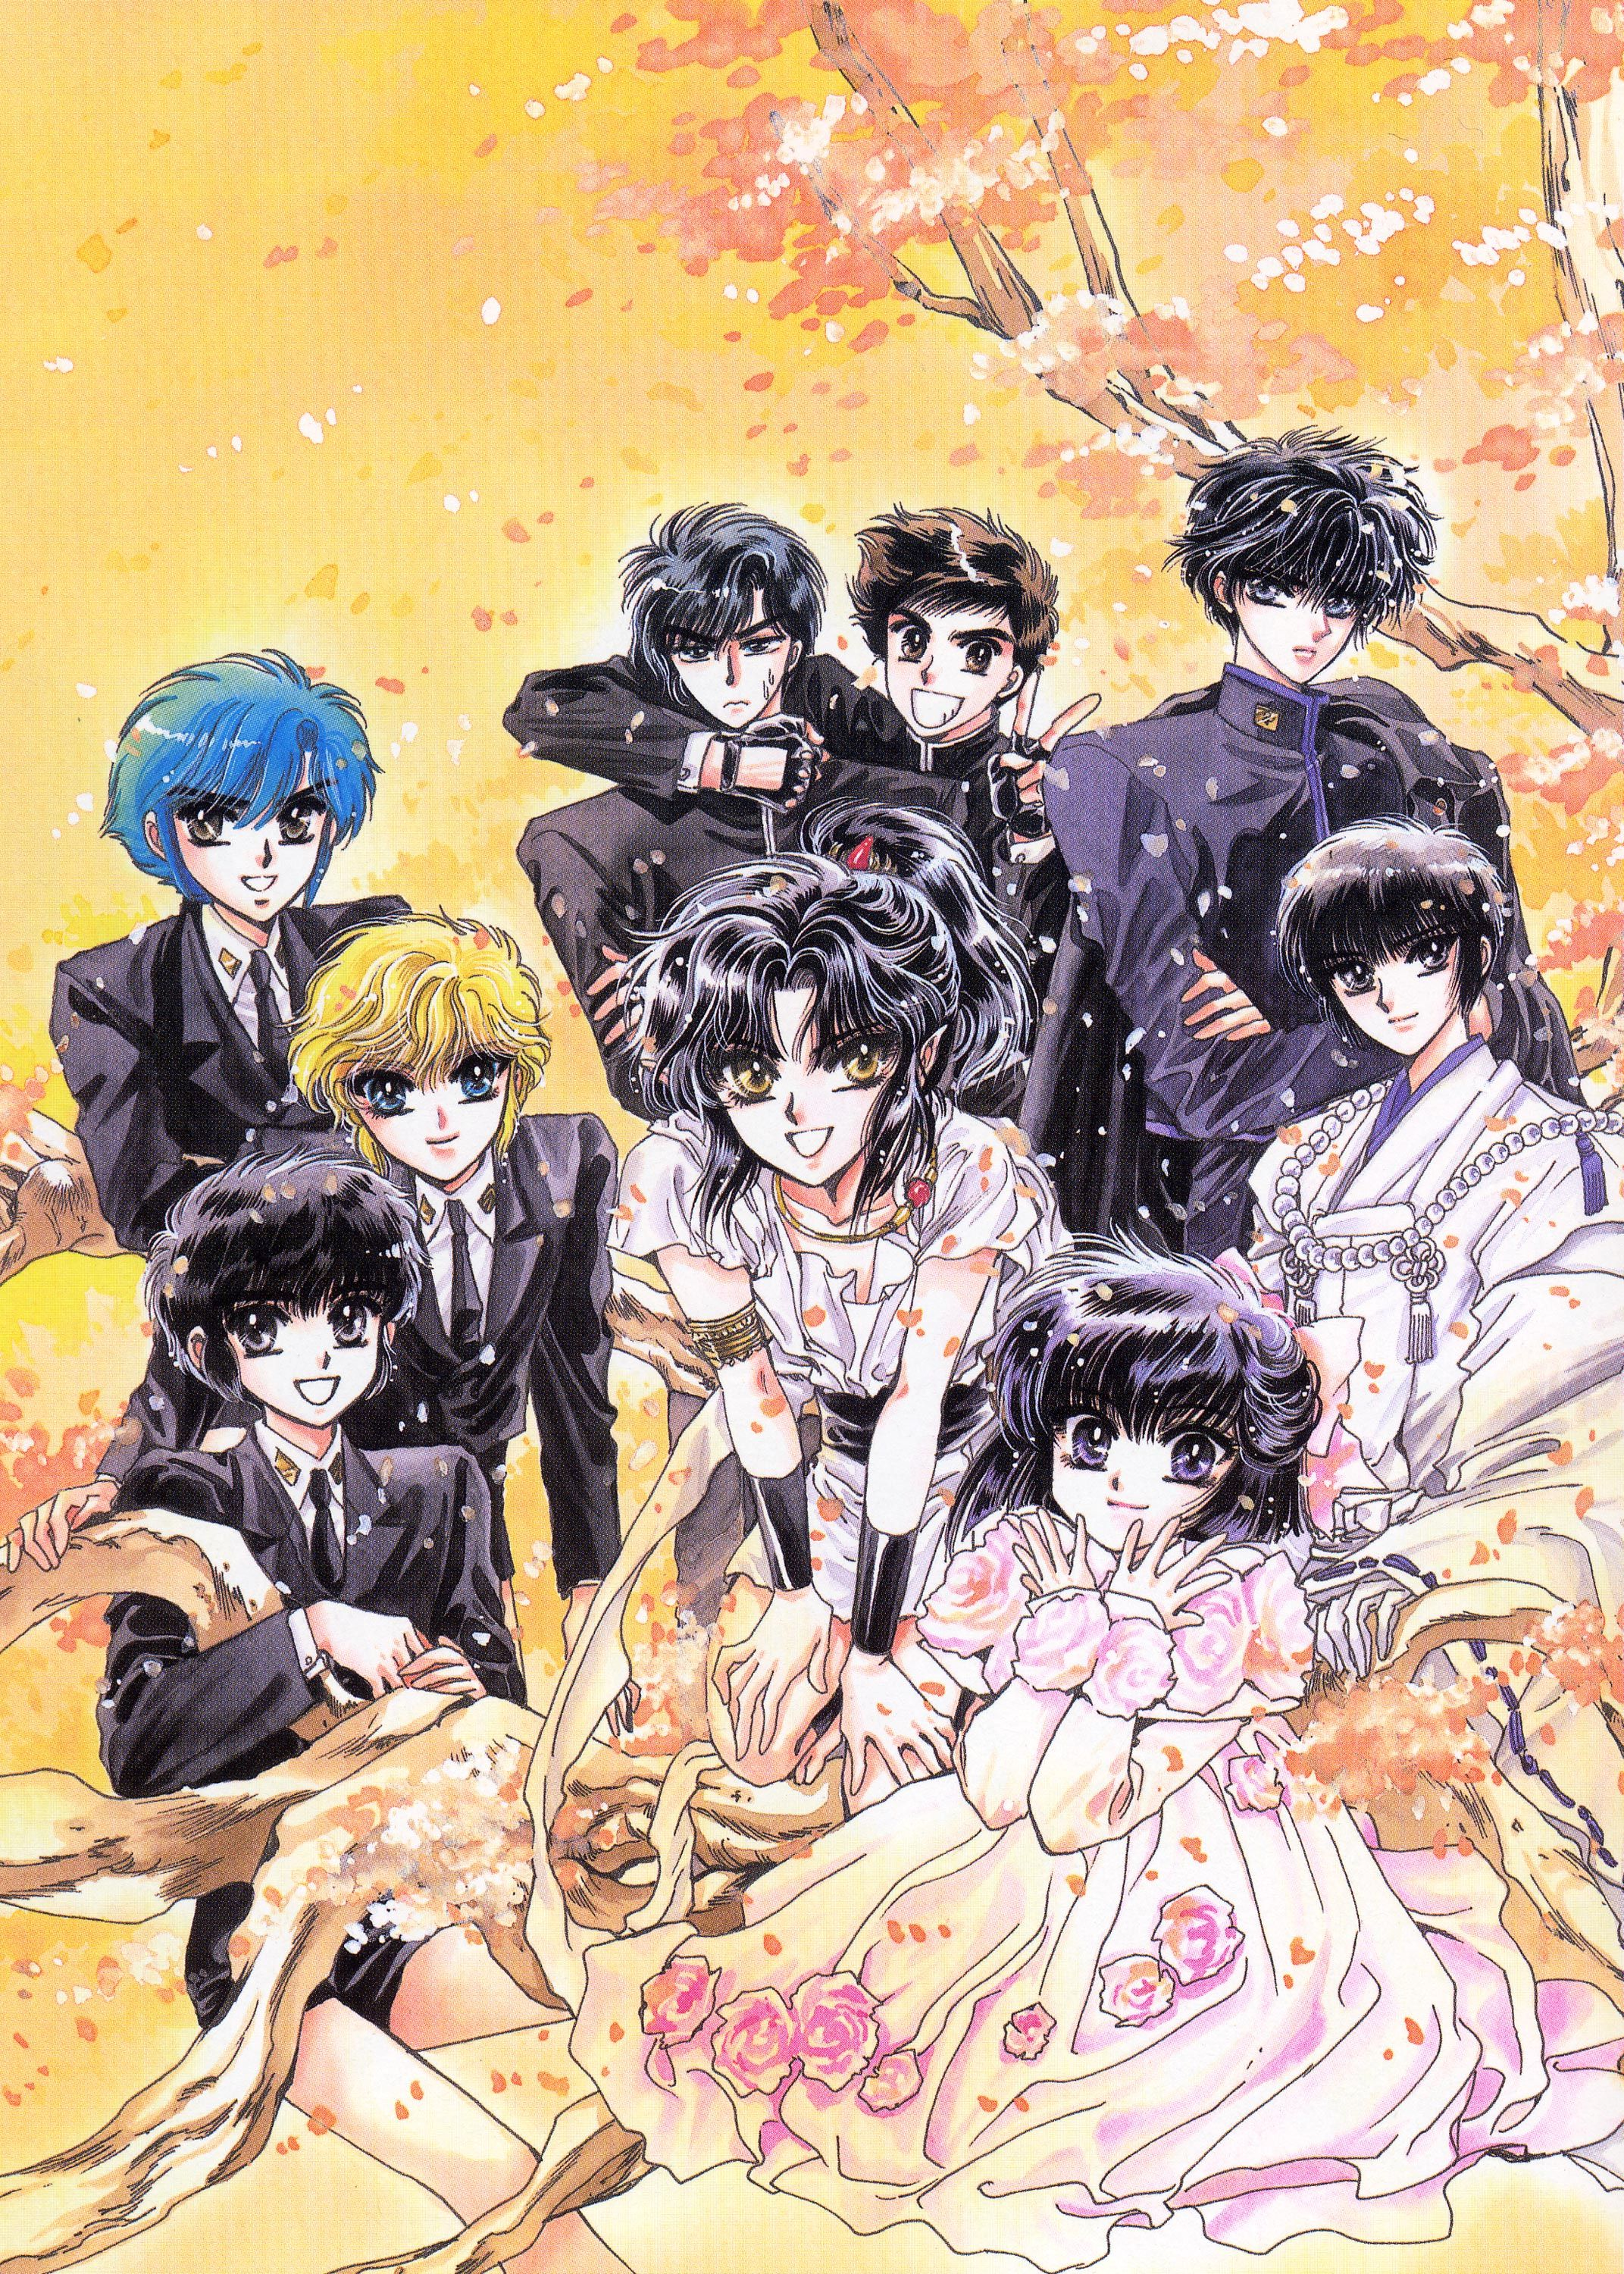 The Increadible Thing About Clamp Is That They Take Their Stories And Intertwine Characters And Universe I M Not Talking About Rg Veda As Part Of The マンガ クランプ